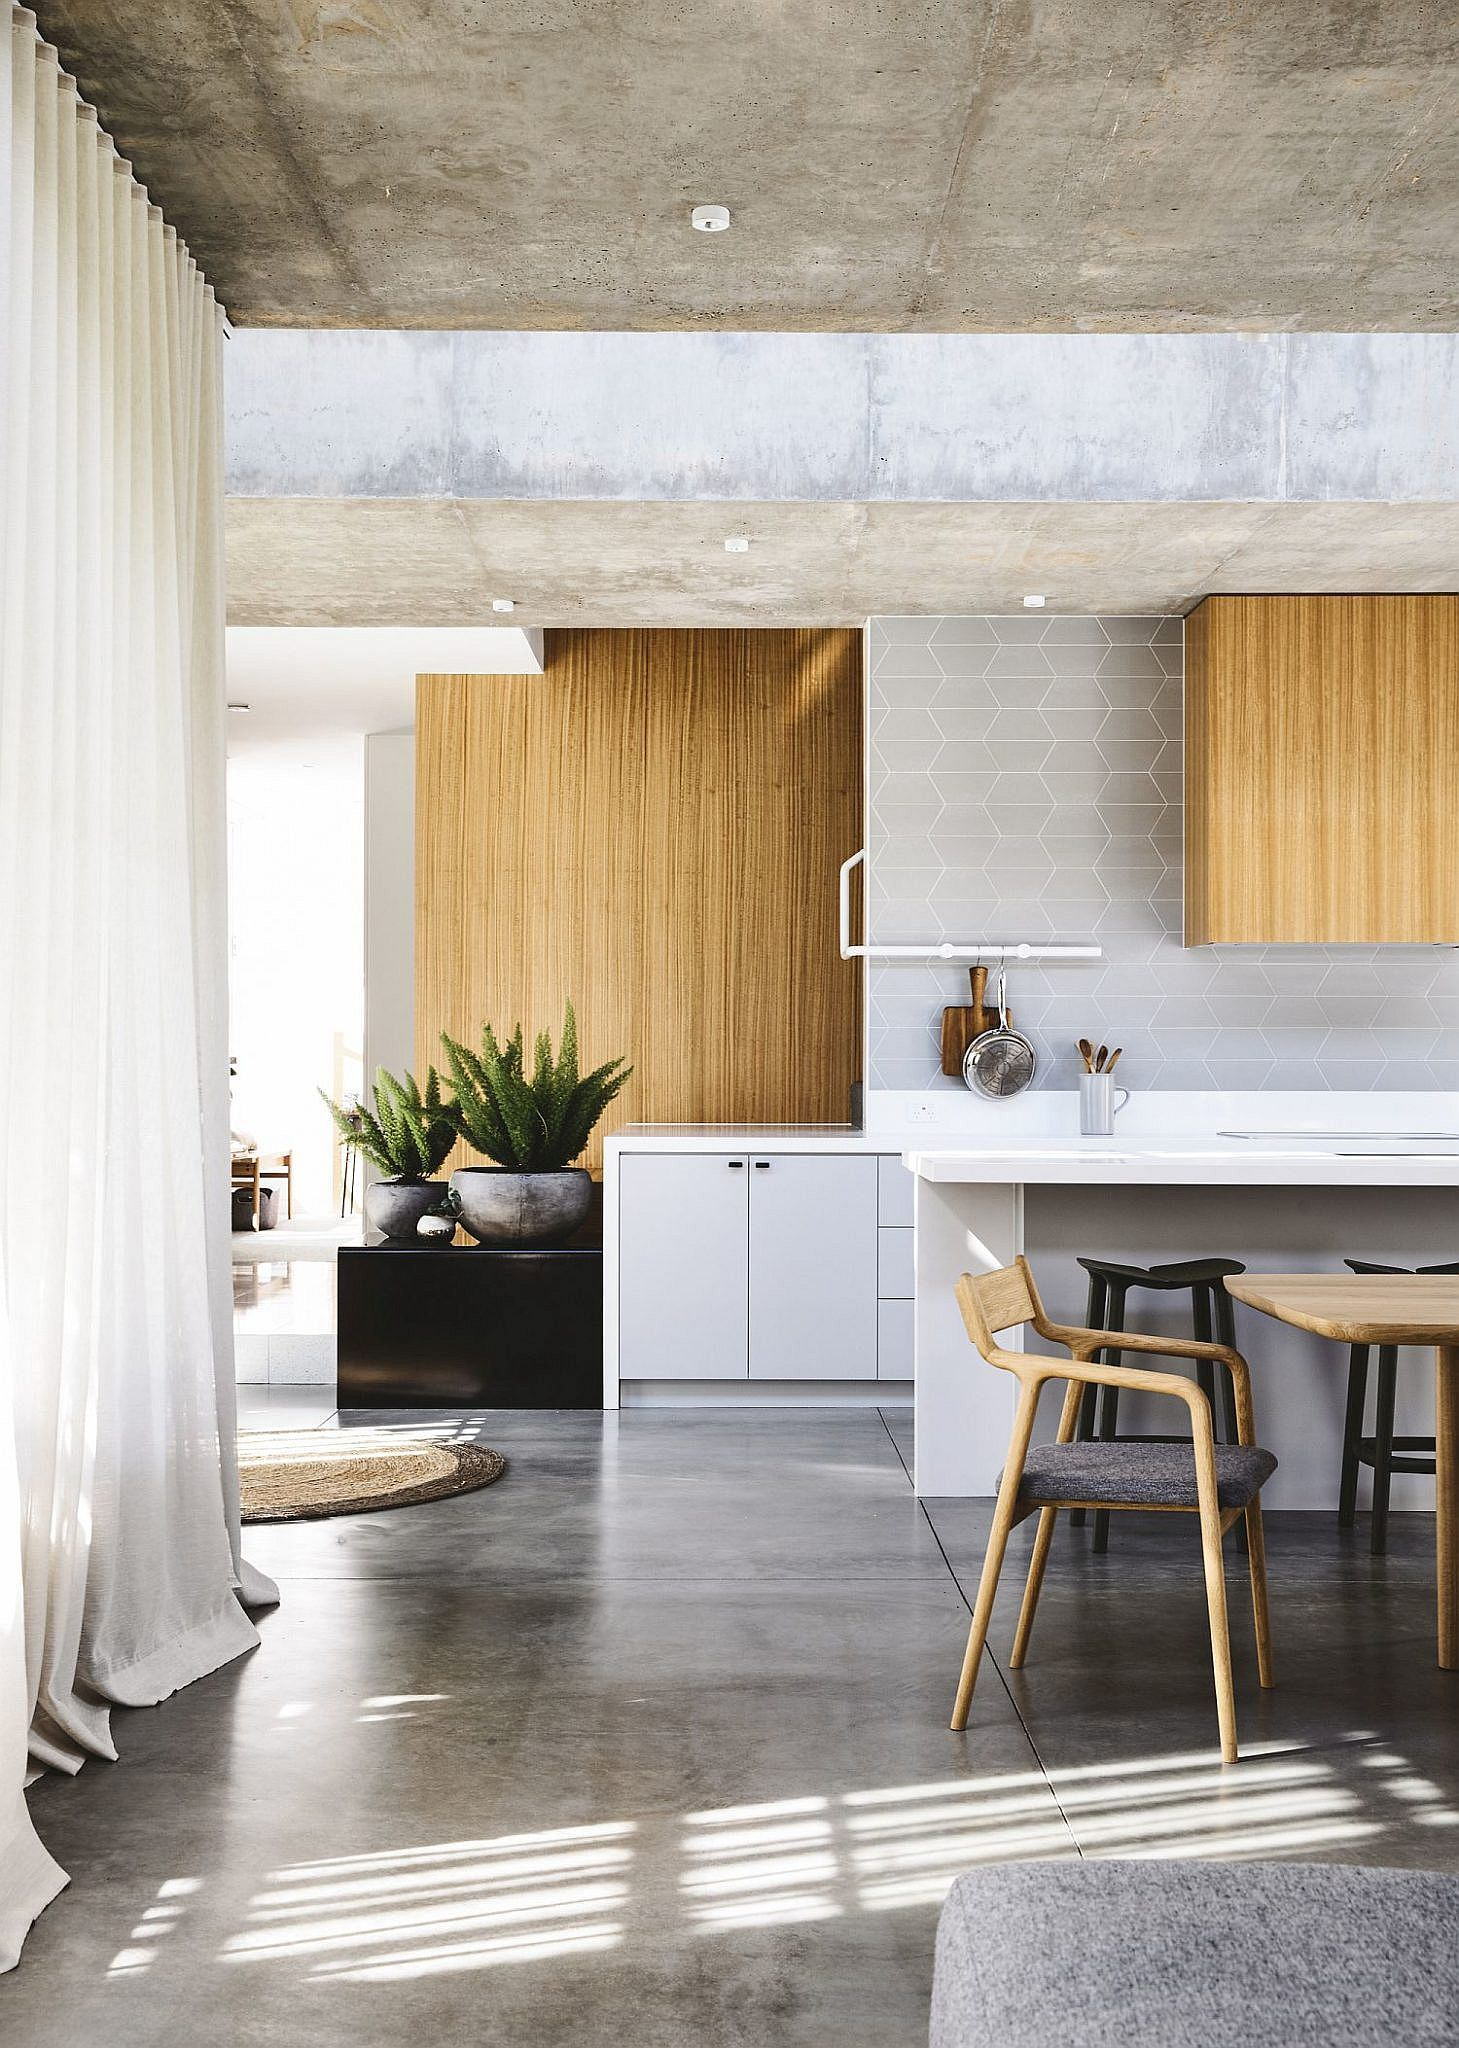 10 Concrete Ceilings That Steal The Show In Modern Homes Kitchen Interior Interior Moving House